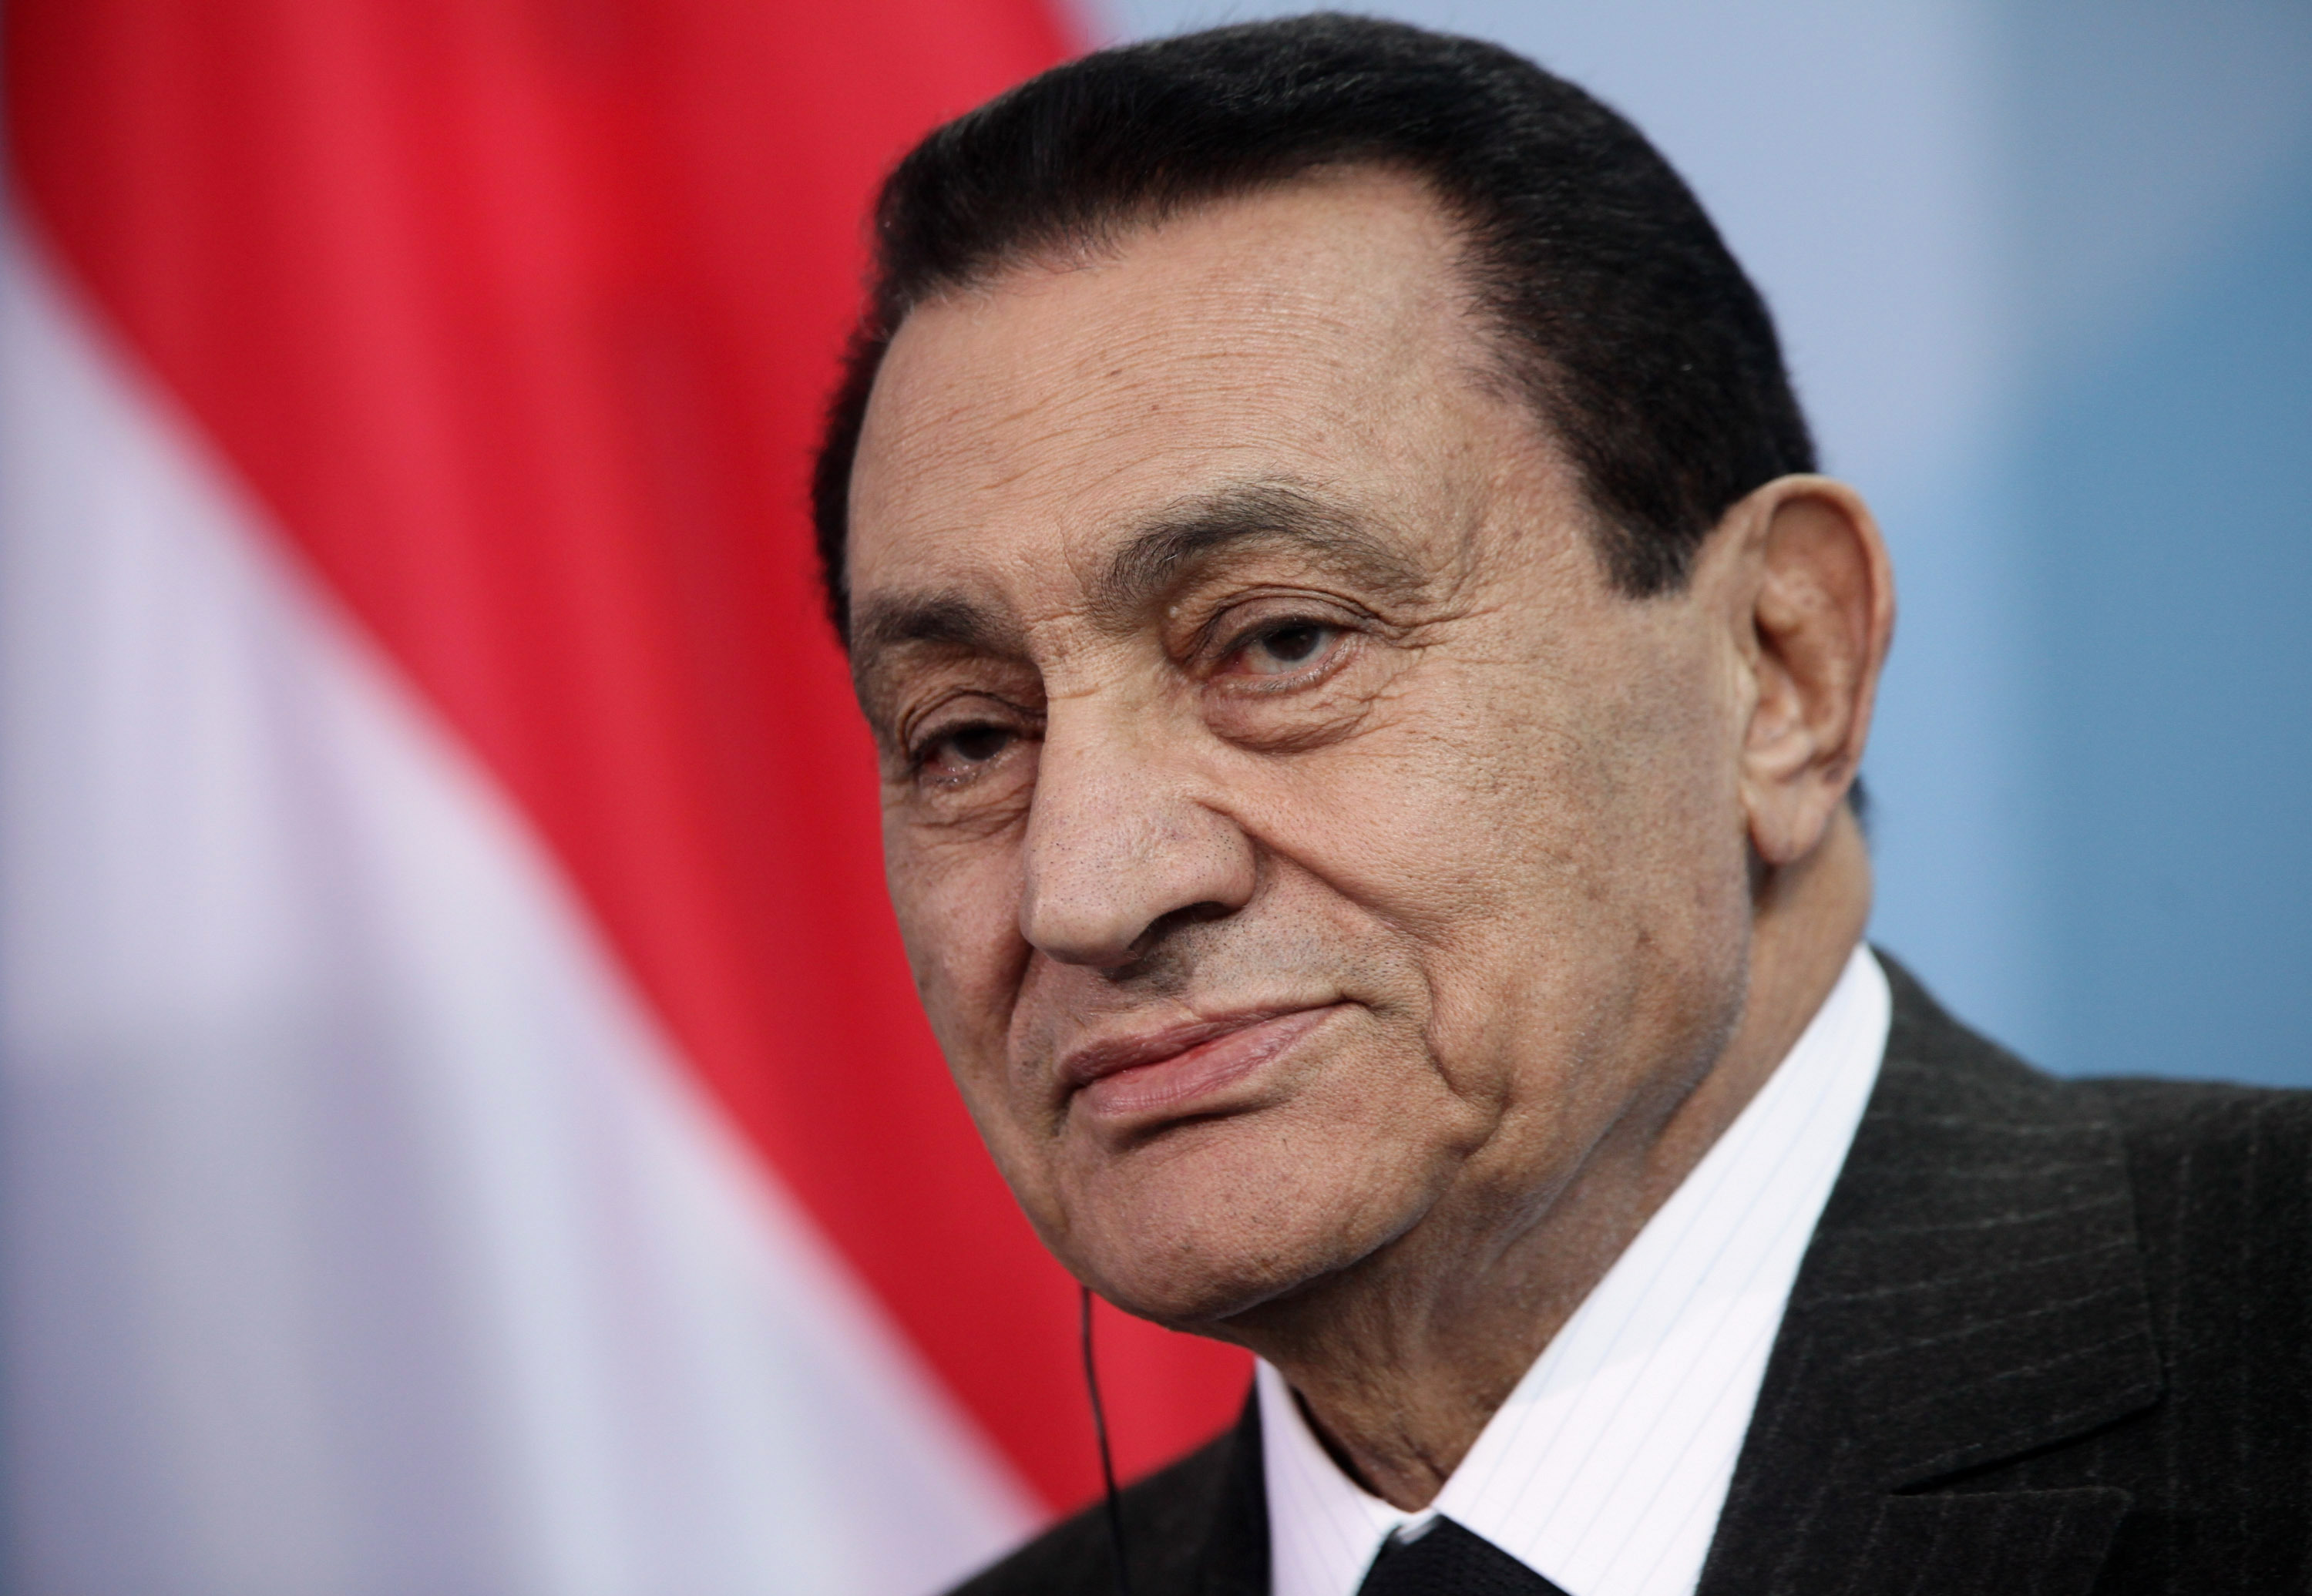 Mubarak, Egypt's Ousted President, Is Dead At 91